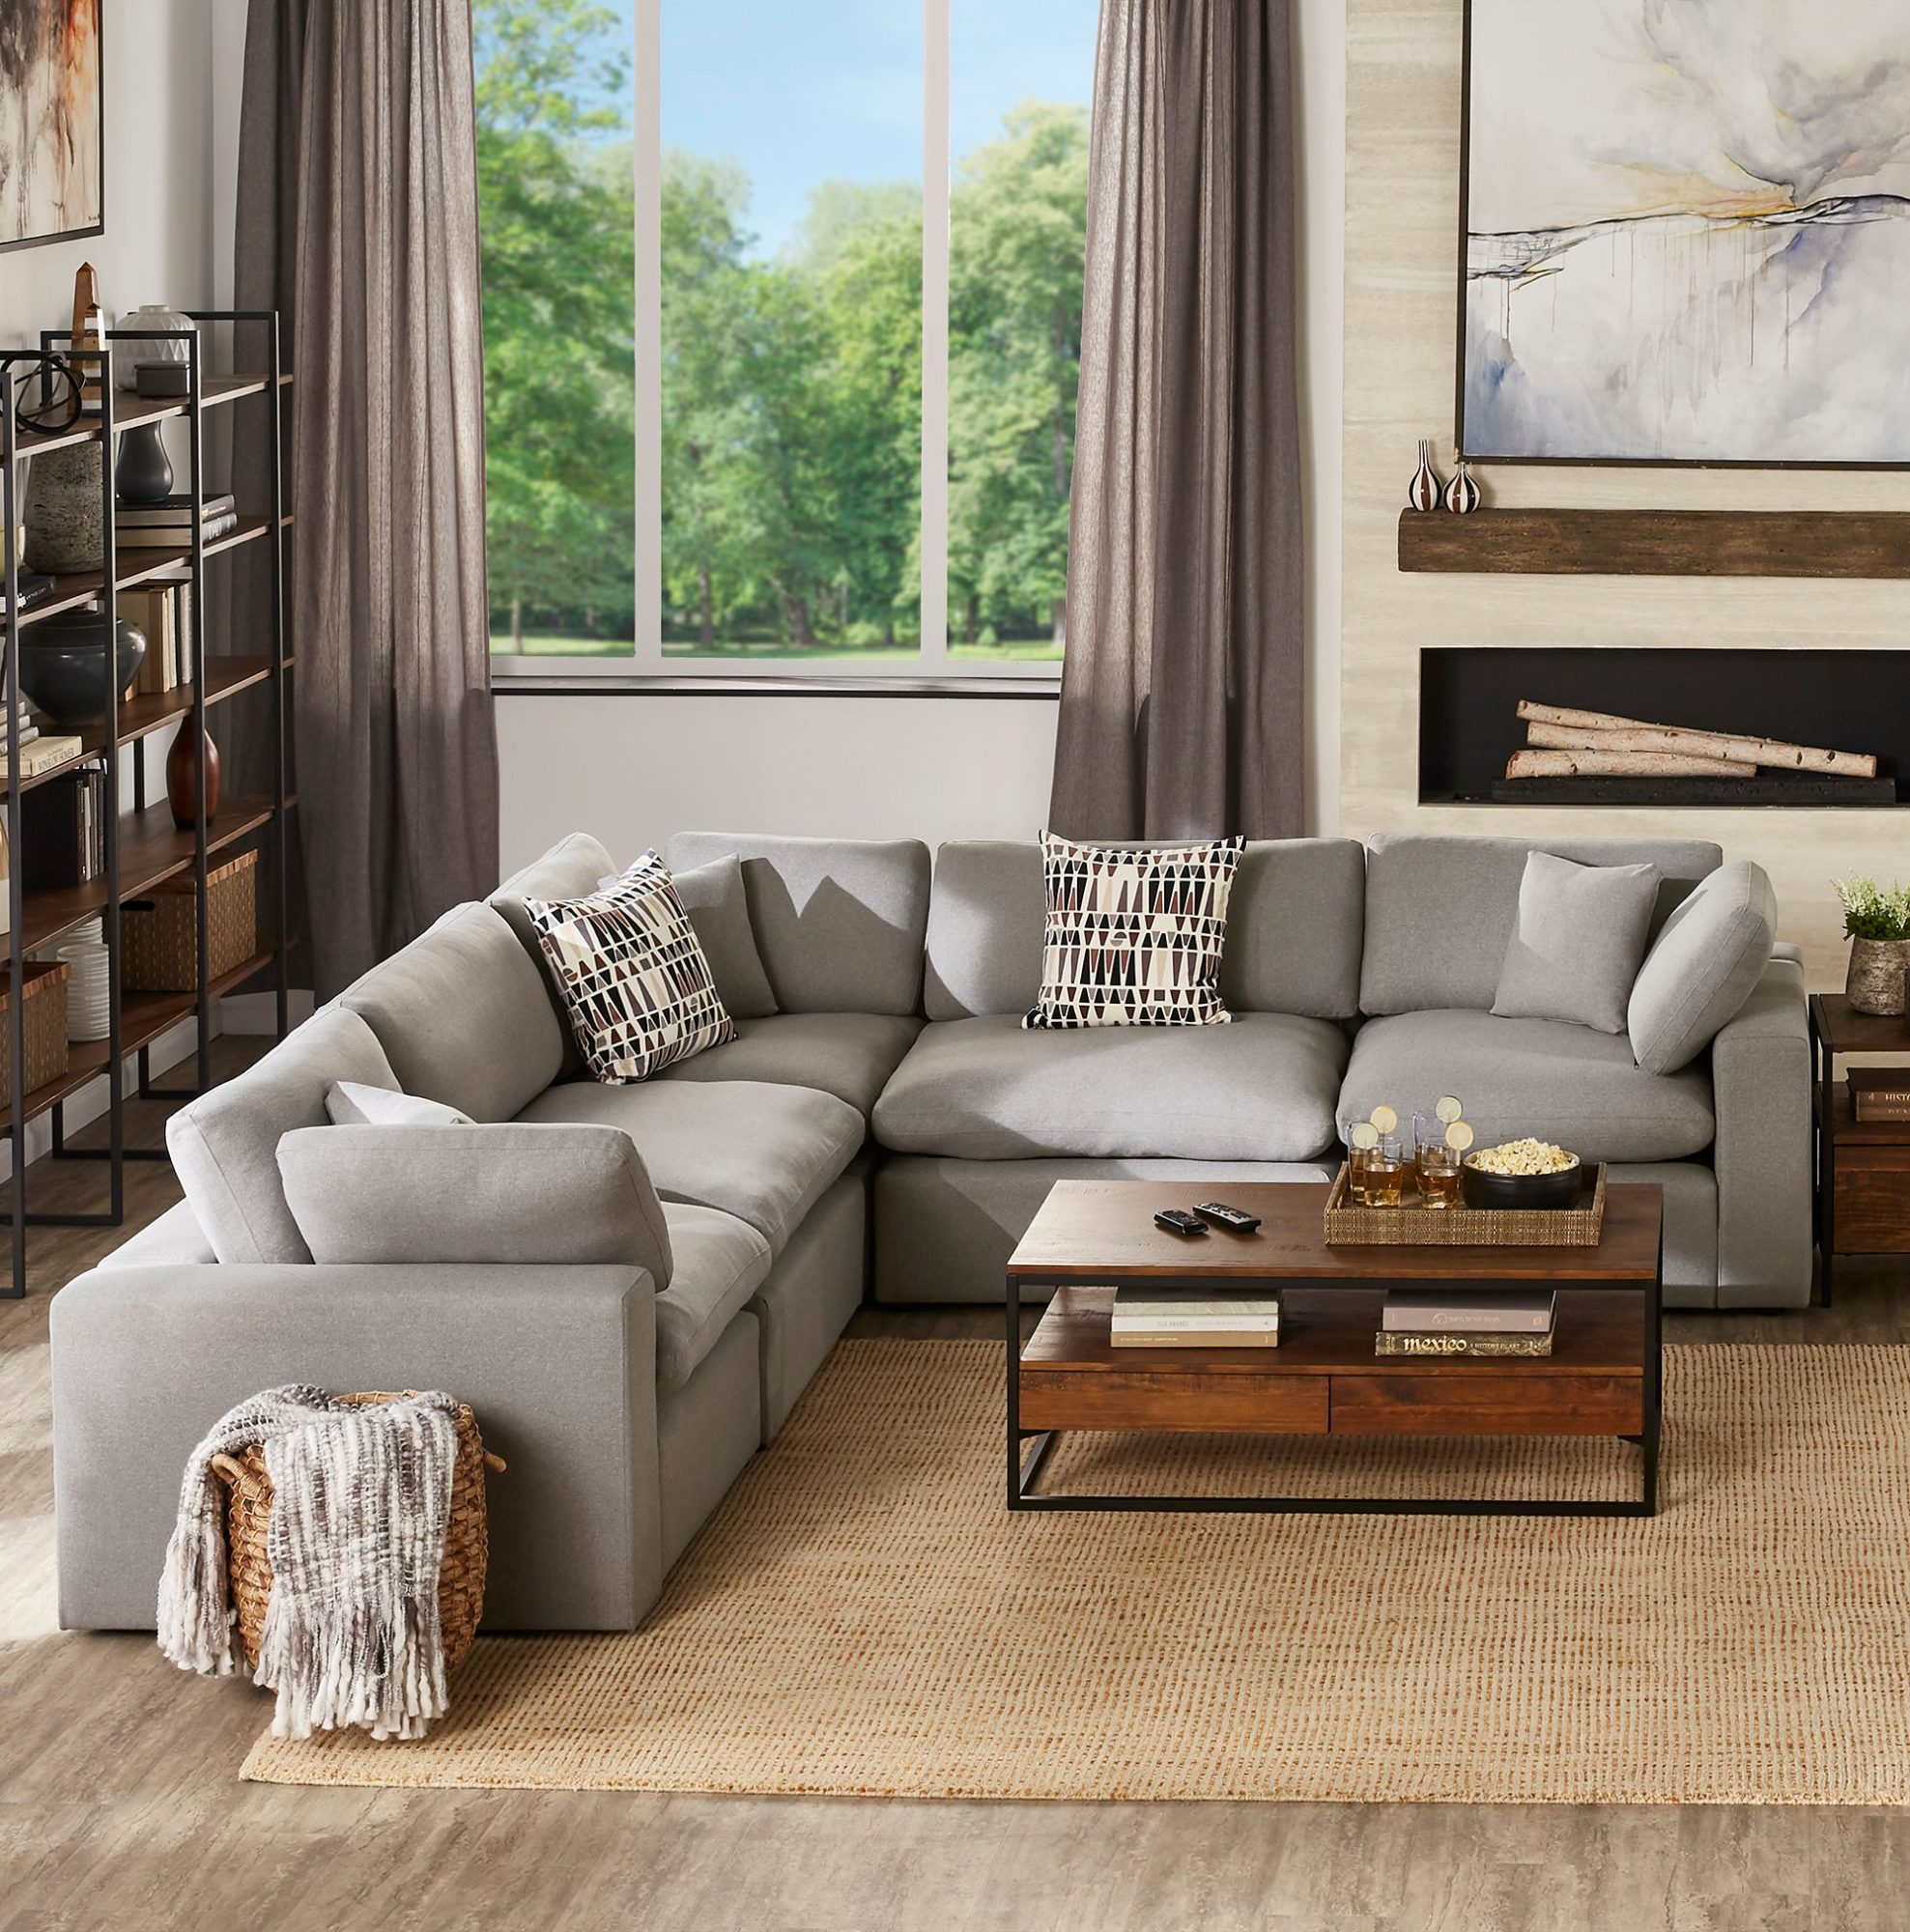 Invest in a cozy sectional sofa. This sofa features 5+ seats, grey linen weave upholstery, and plush cushions made with a down blend. Sectional sofas are great to center around coffee tables or ottomans.